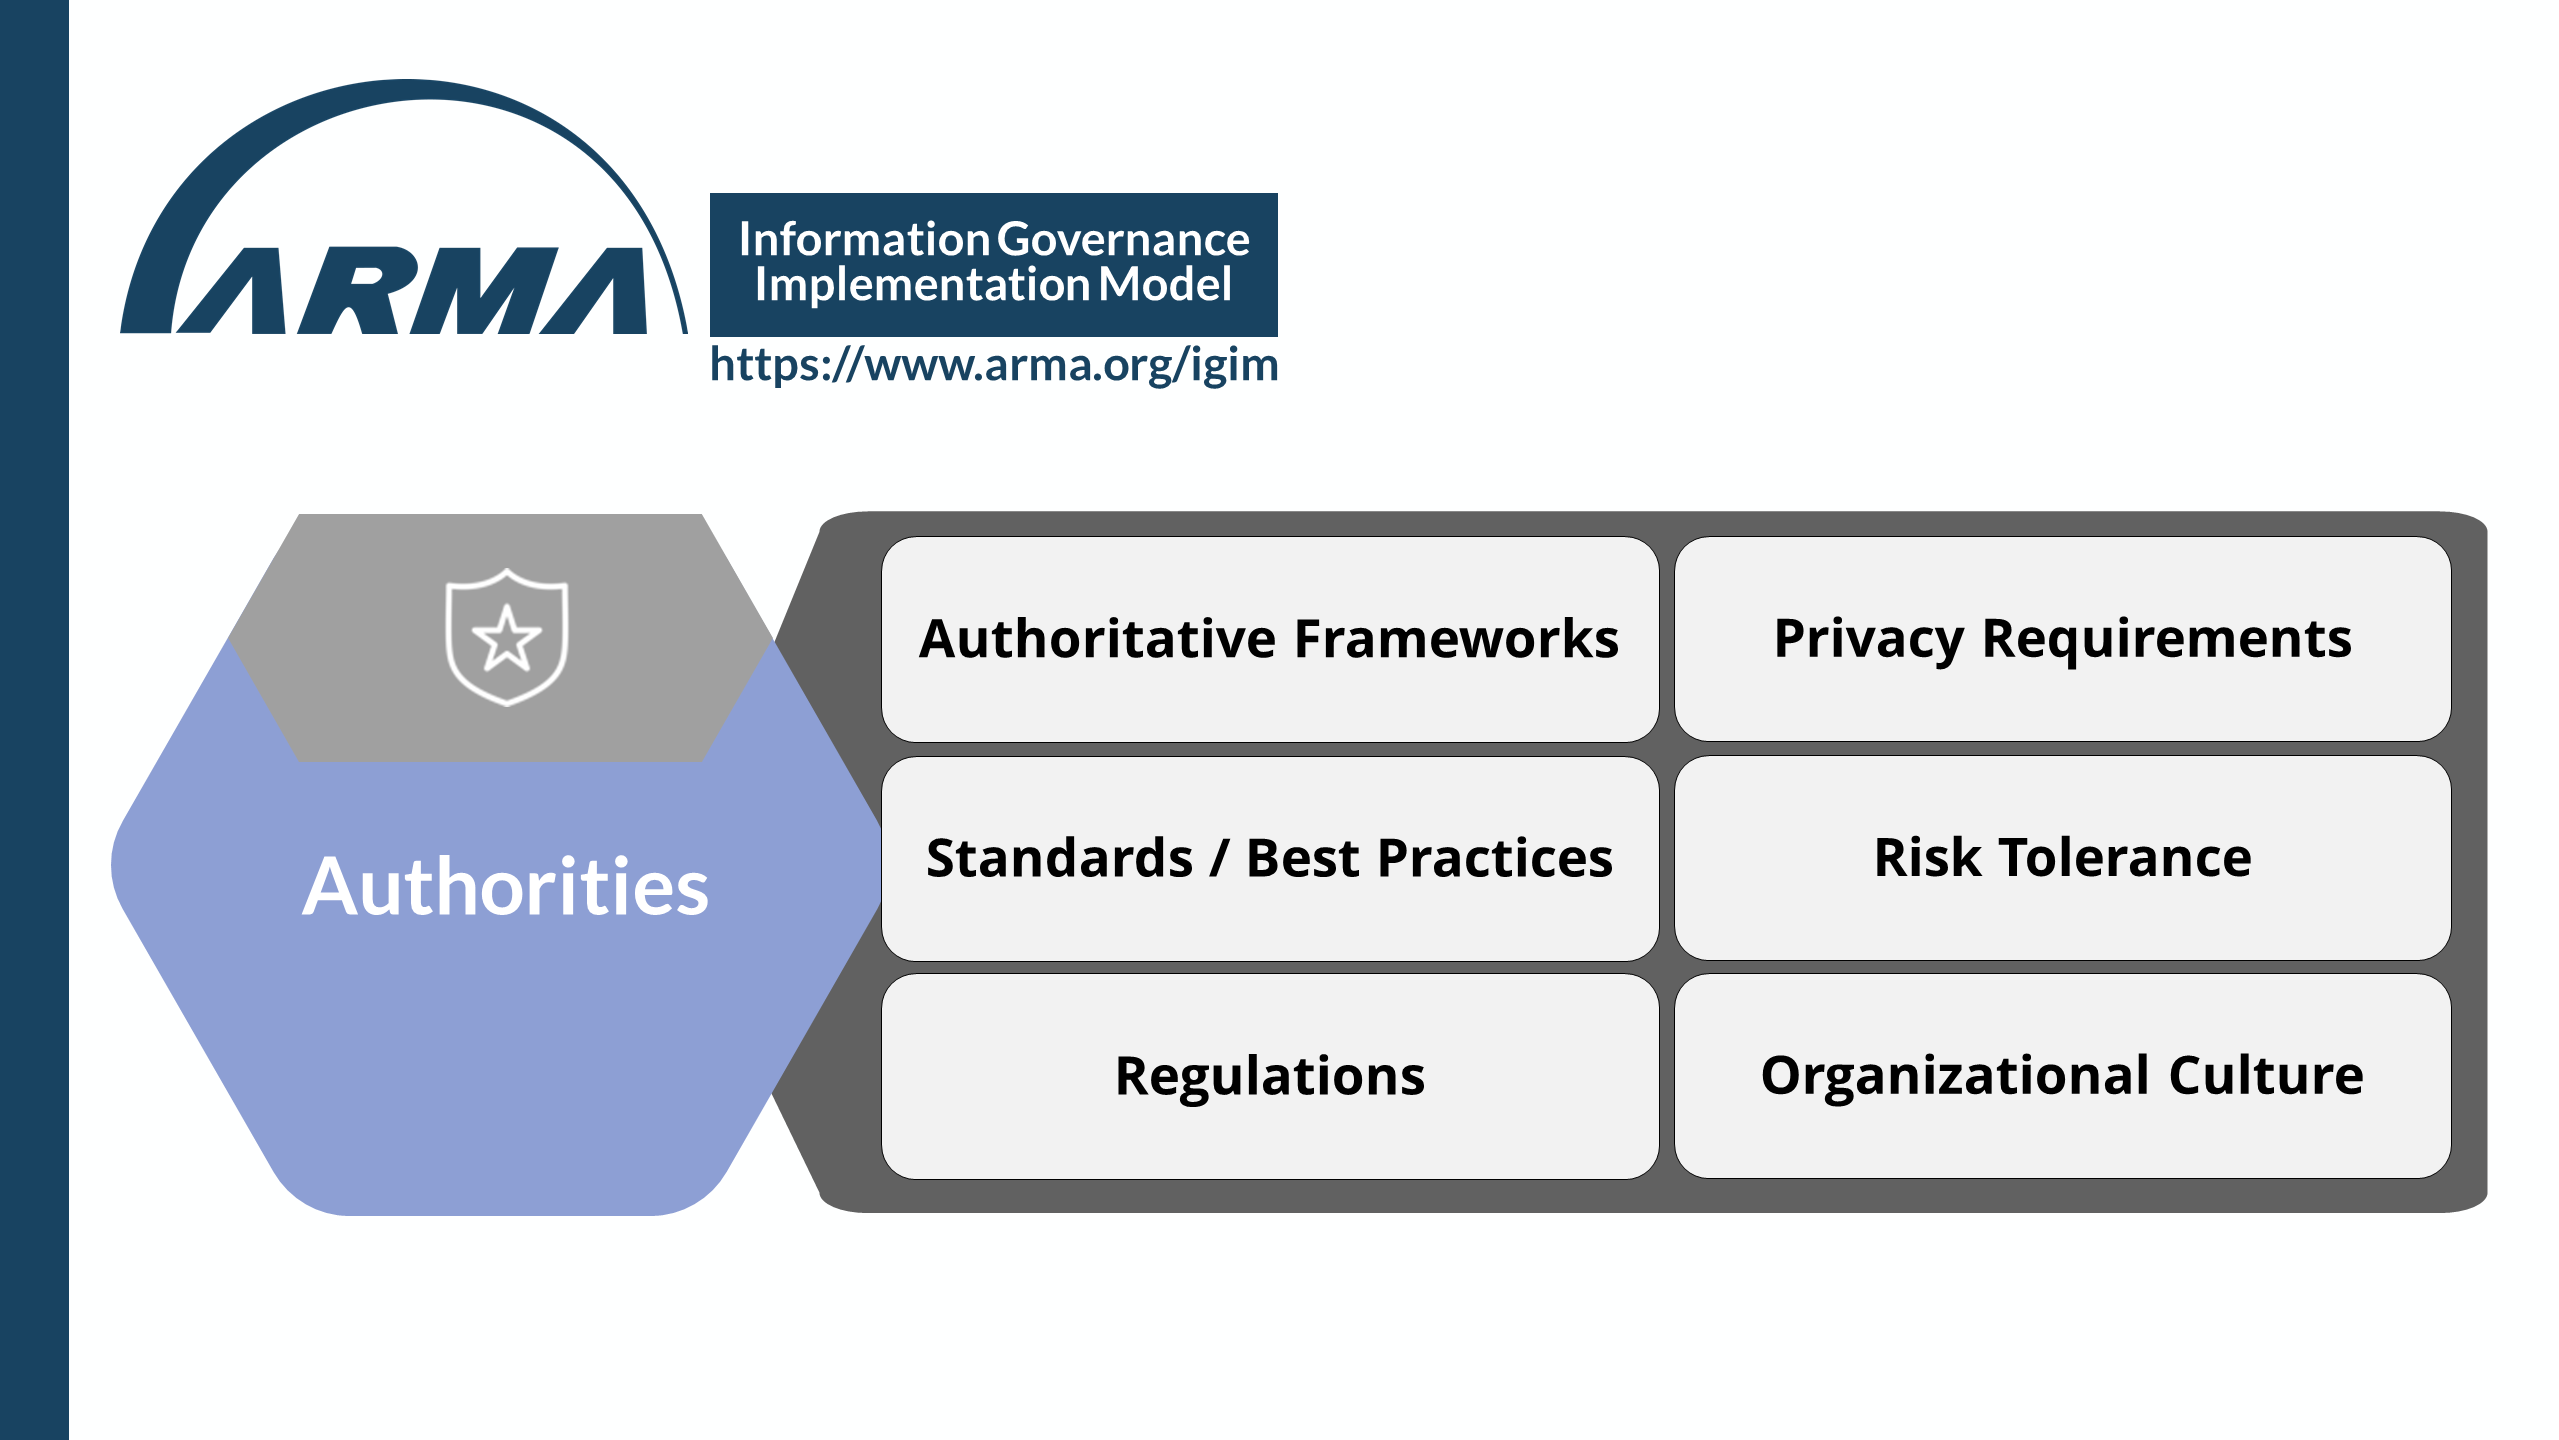 Information Governance Implementation Model - Authorities